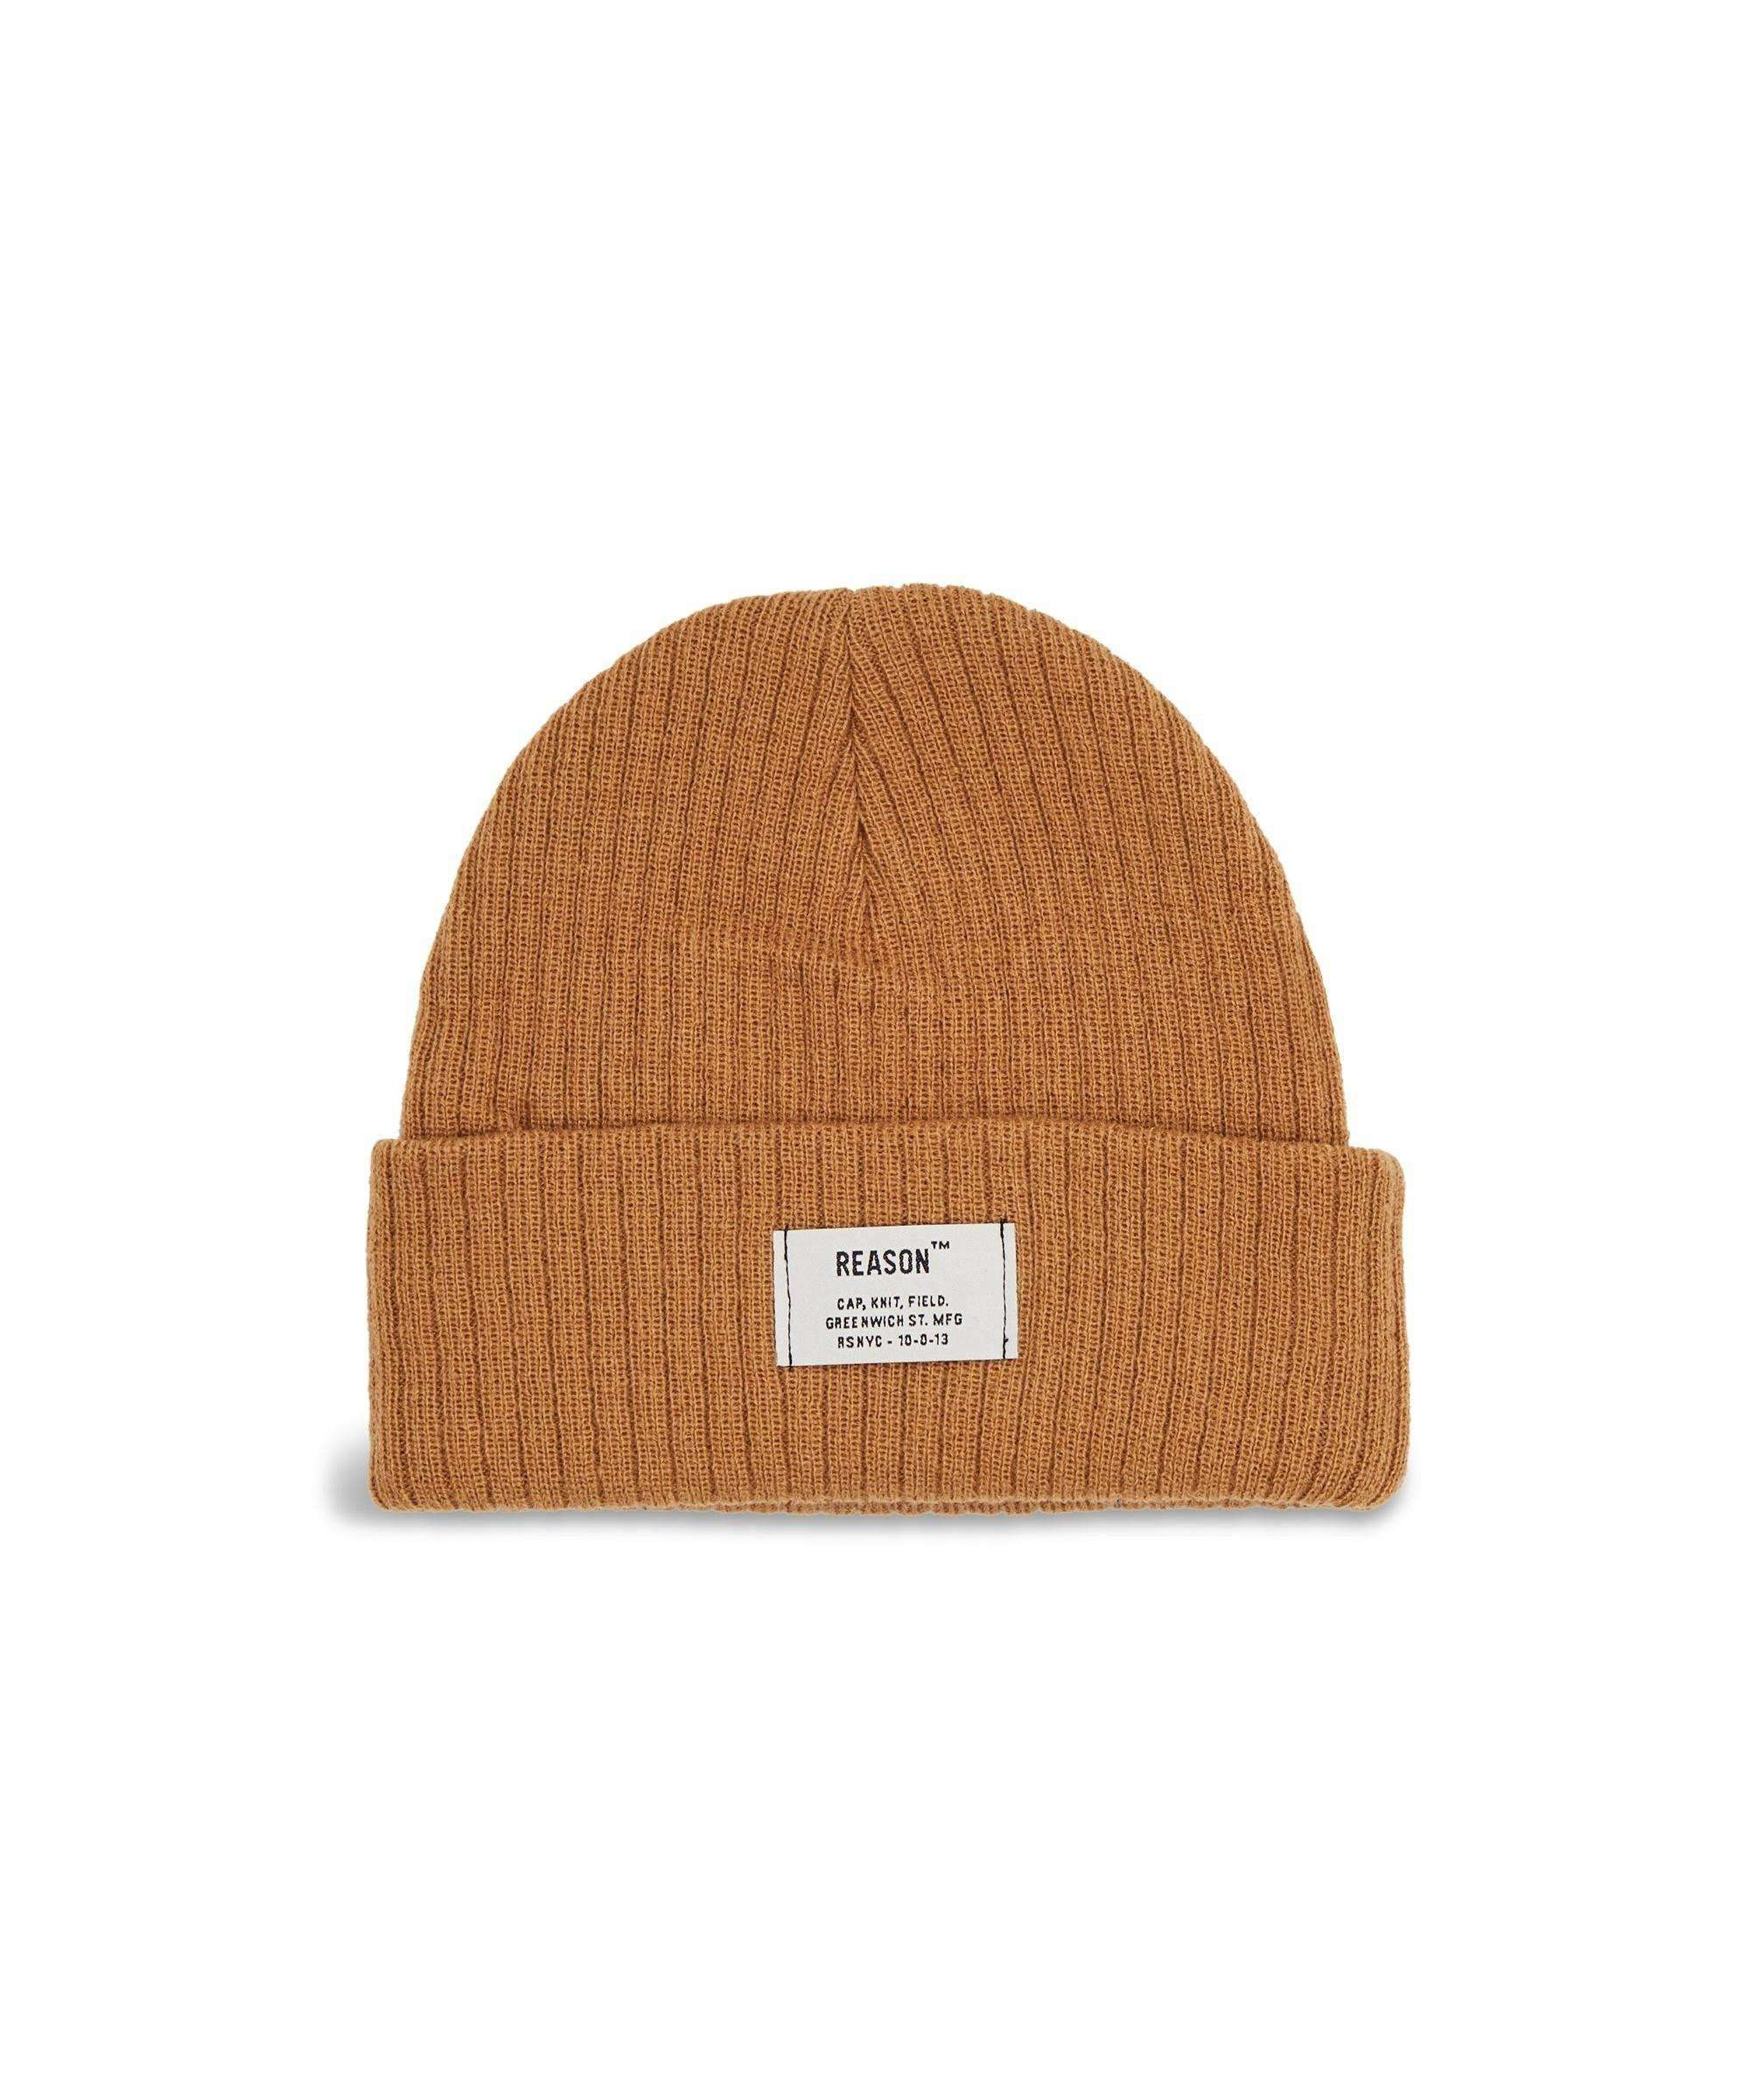 INDUSTRIAL BEANIE - CAMEL - Reason Clothing